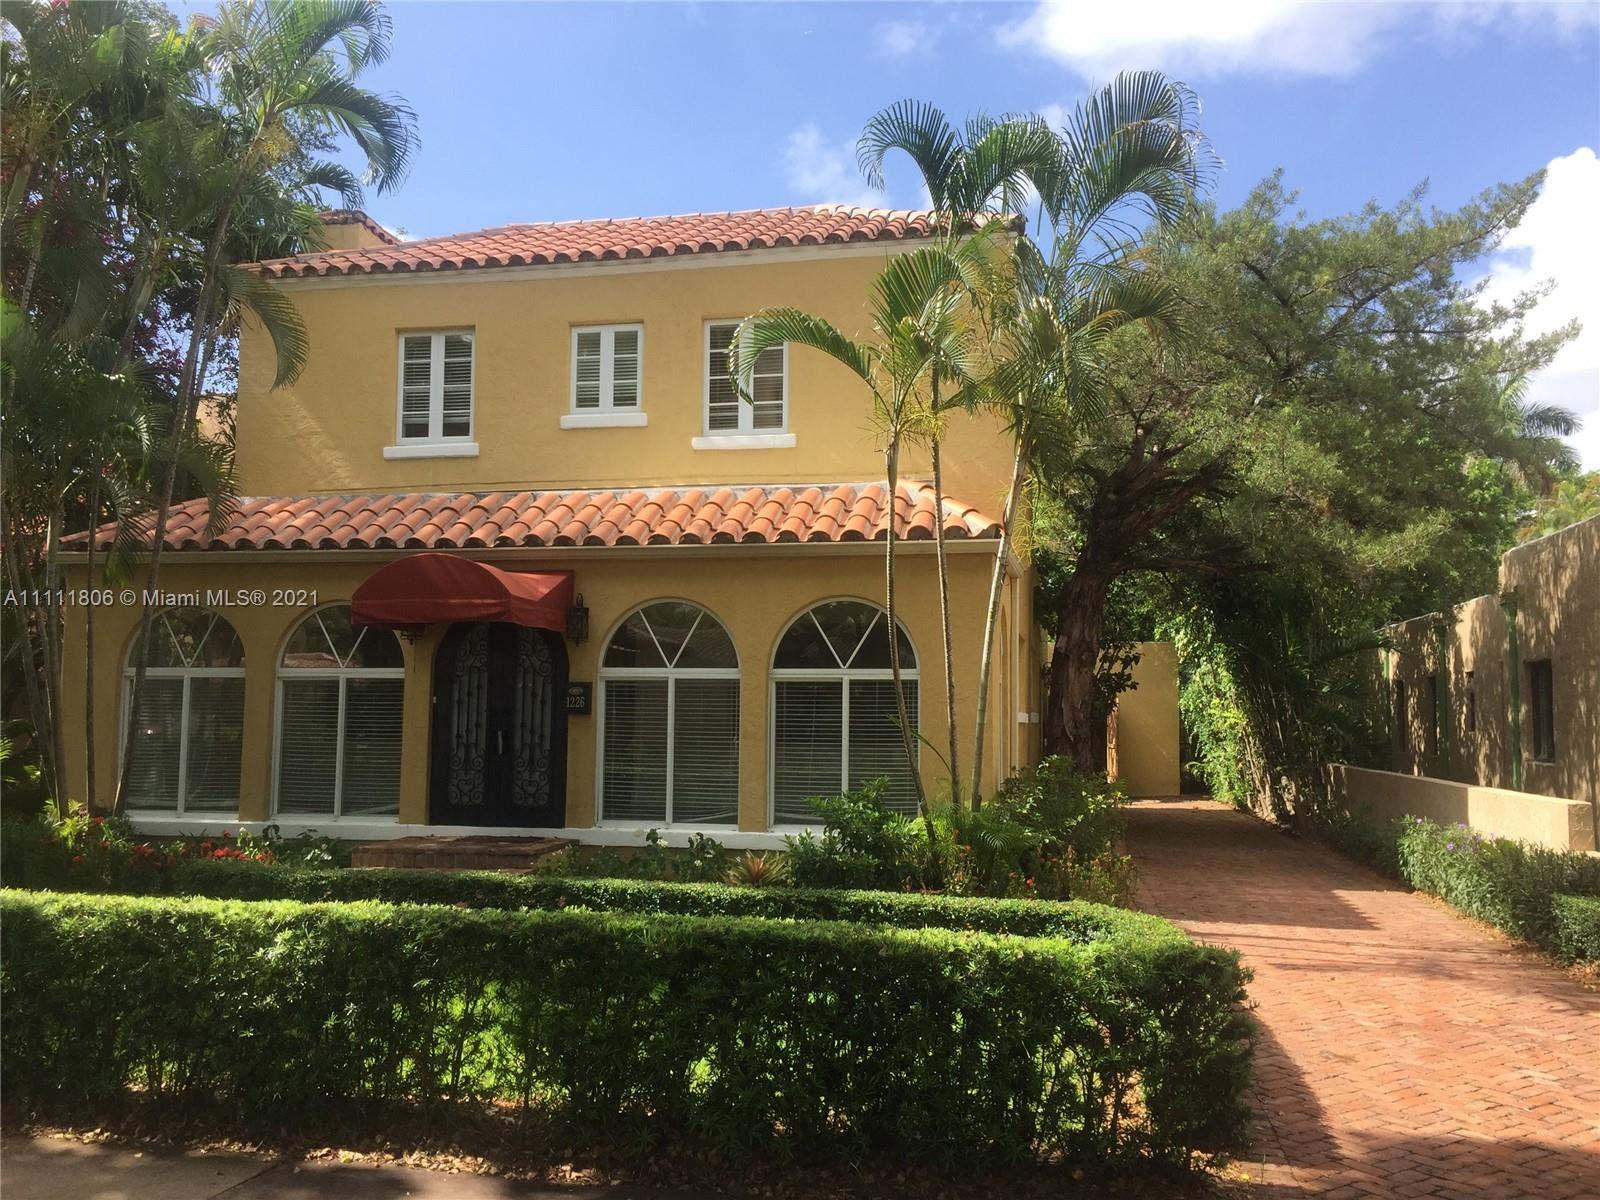 Single Family Home,For Rent,1226 Palermo Ave #1226, Coral Gables, Florida 33134,Brickell,realty,broker,condos near me